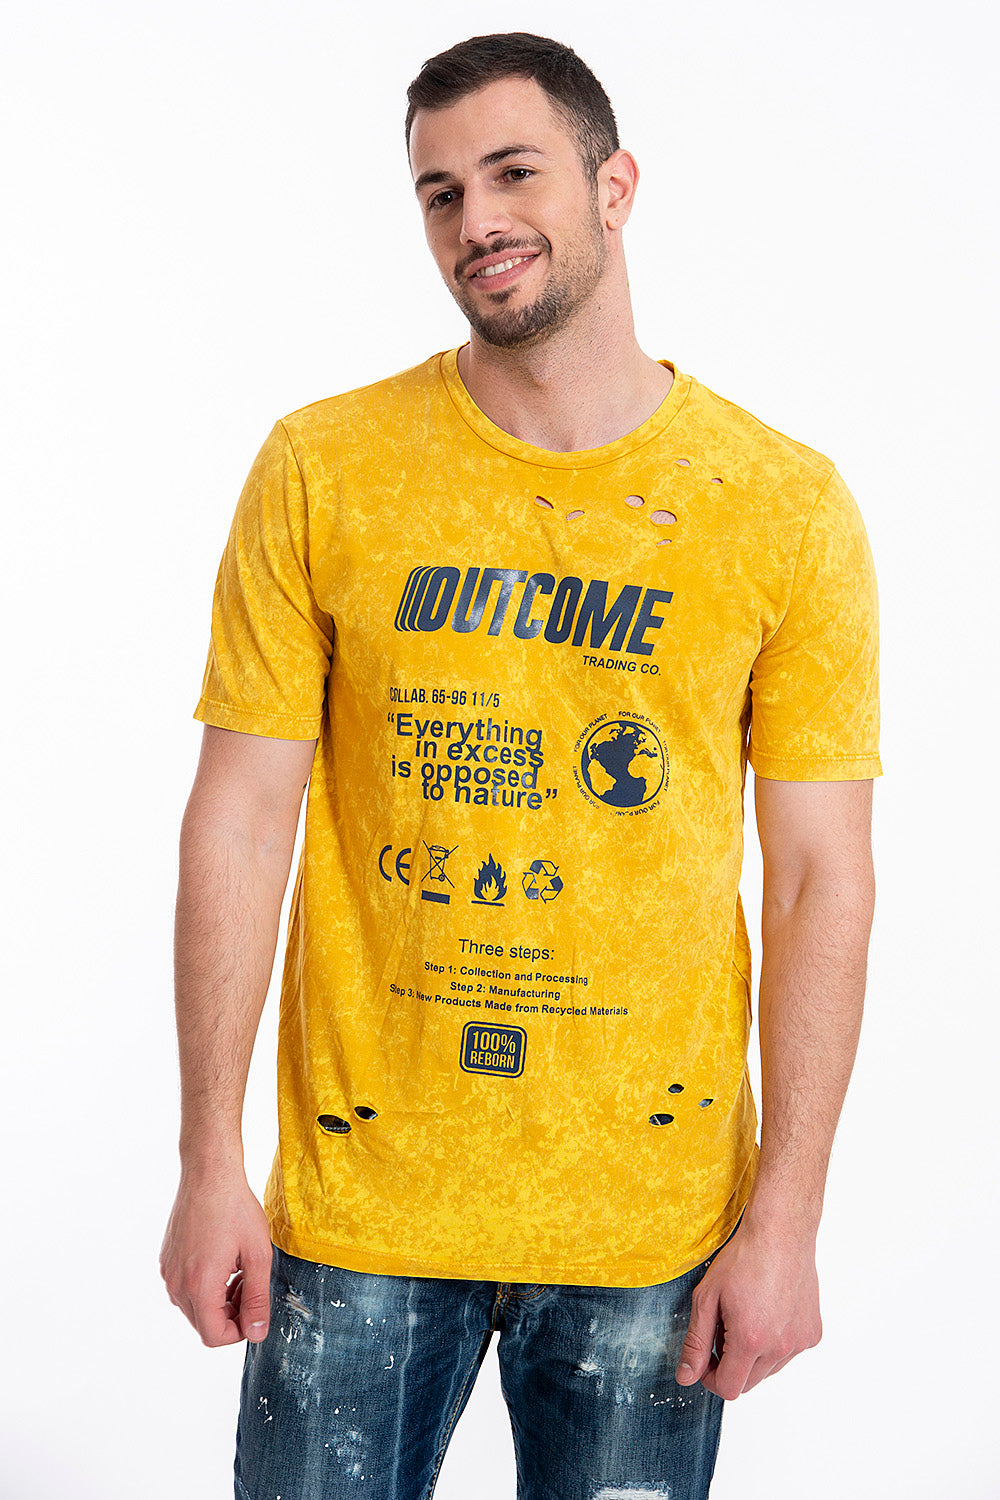 Outcome t-shirt with texts and symbols